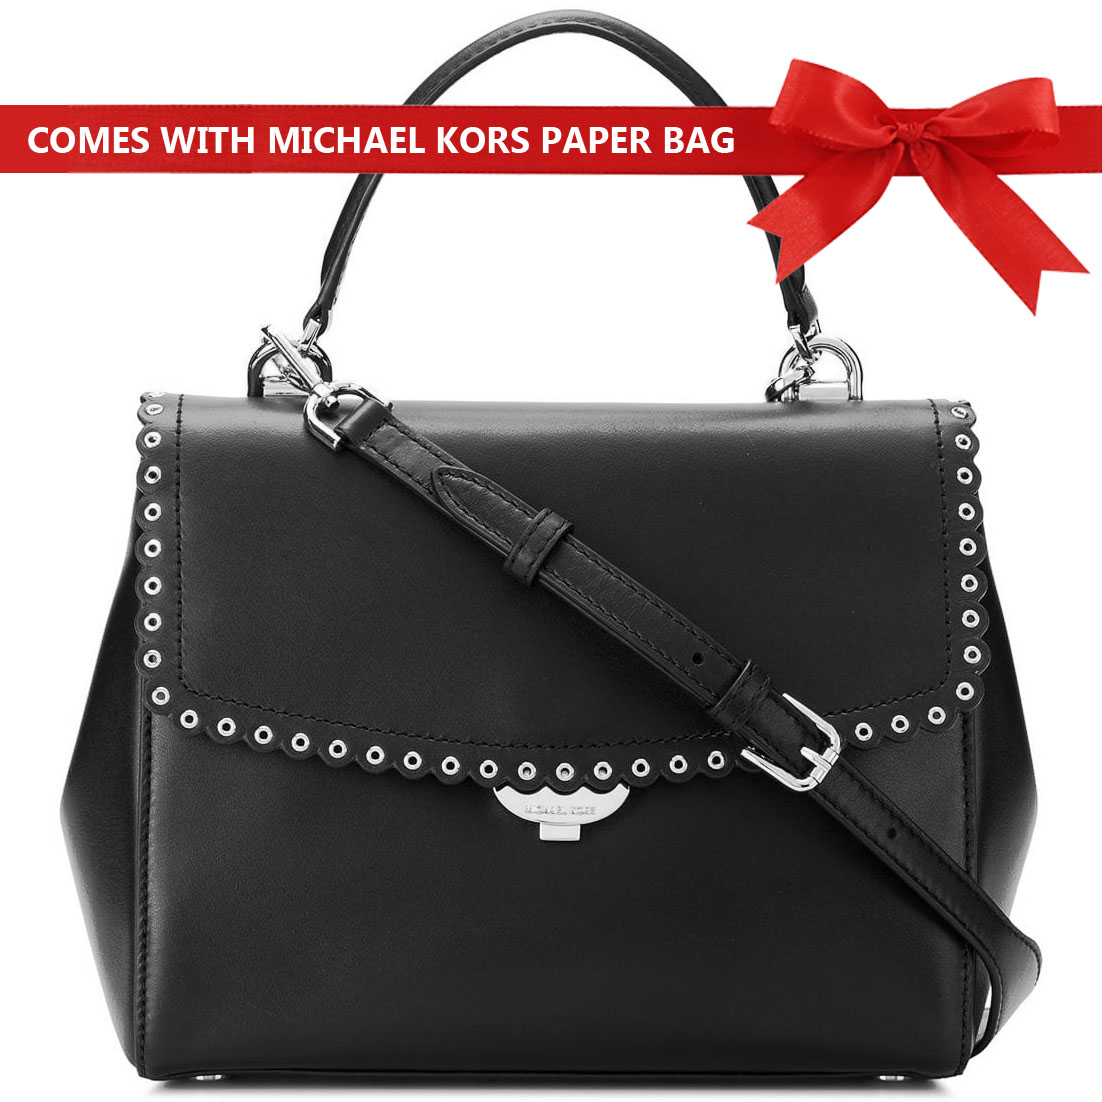 Michael Kors Ava Medium Top Zip Leather Satchel Shoulder Crossbody Bag Black / Silver # 30T8TAVS2I